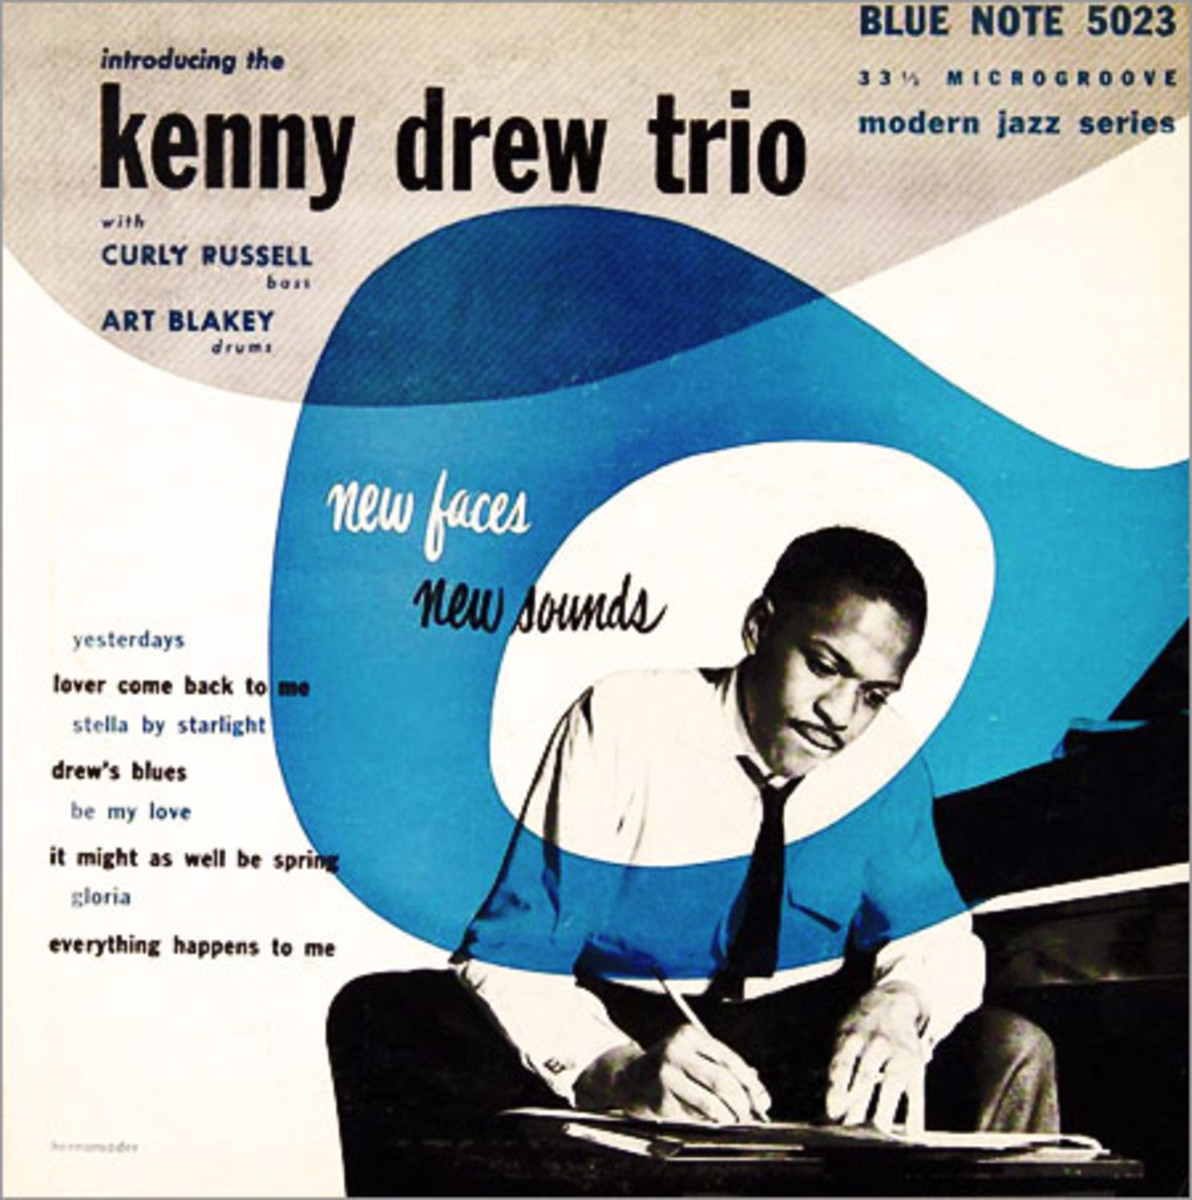 "Introducing The Kenny Drew Trio ""New Faces, New Sounds"" Blue Note Records BLP 5023 10"" LP Vinyl Microgroove Record (1953) Album Cover Design by Photo by"